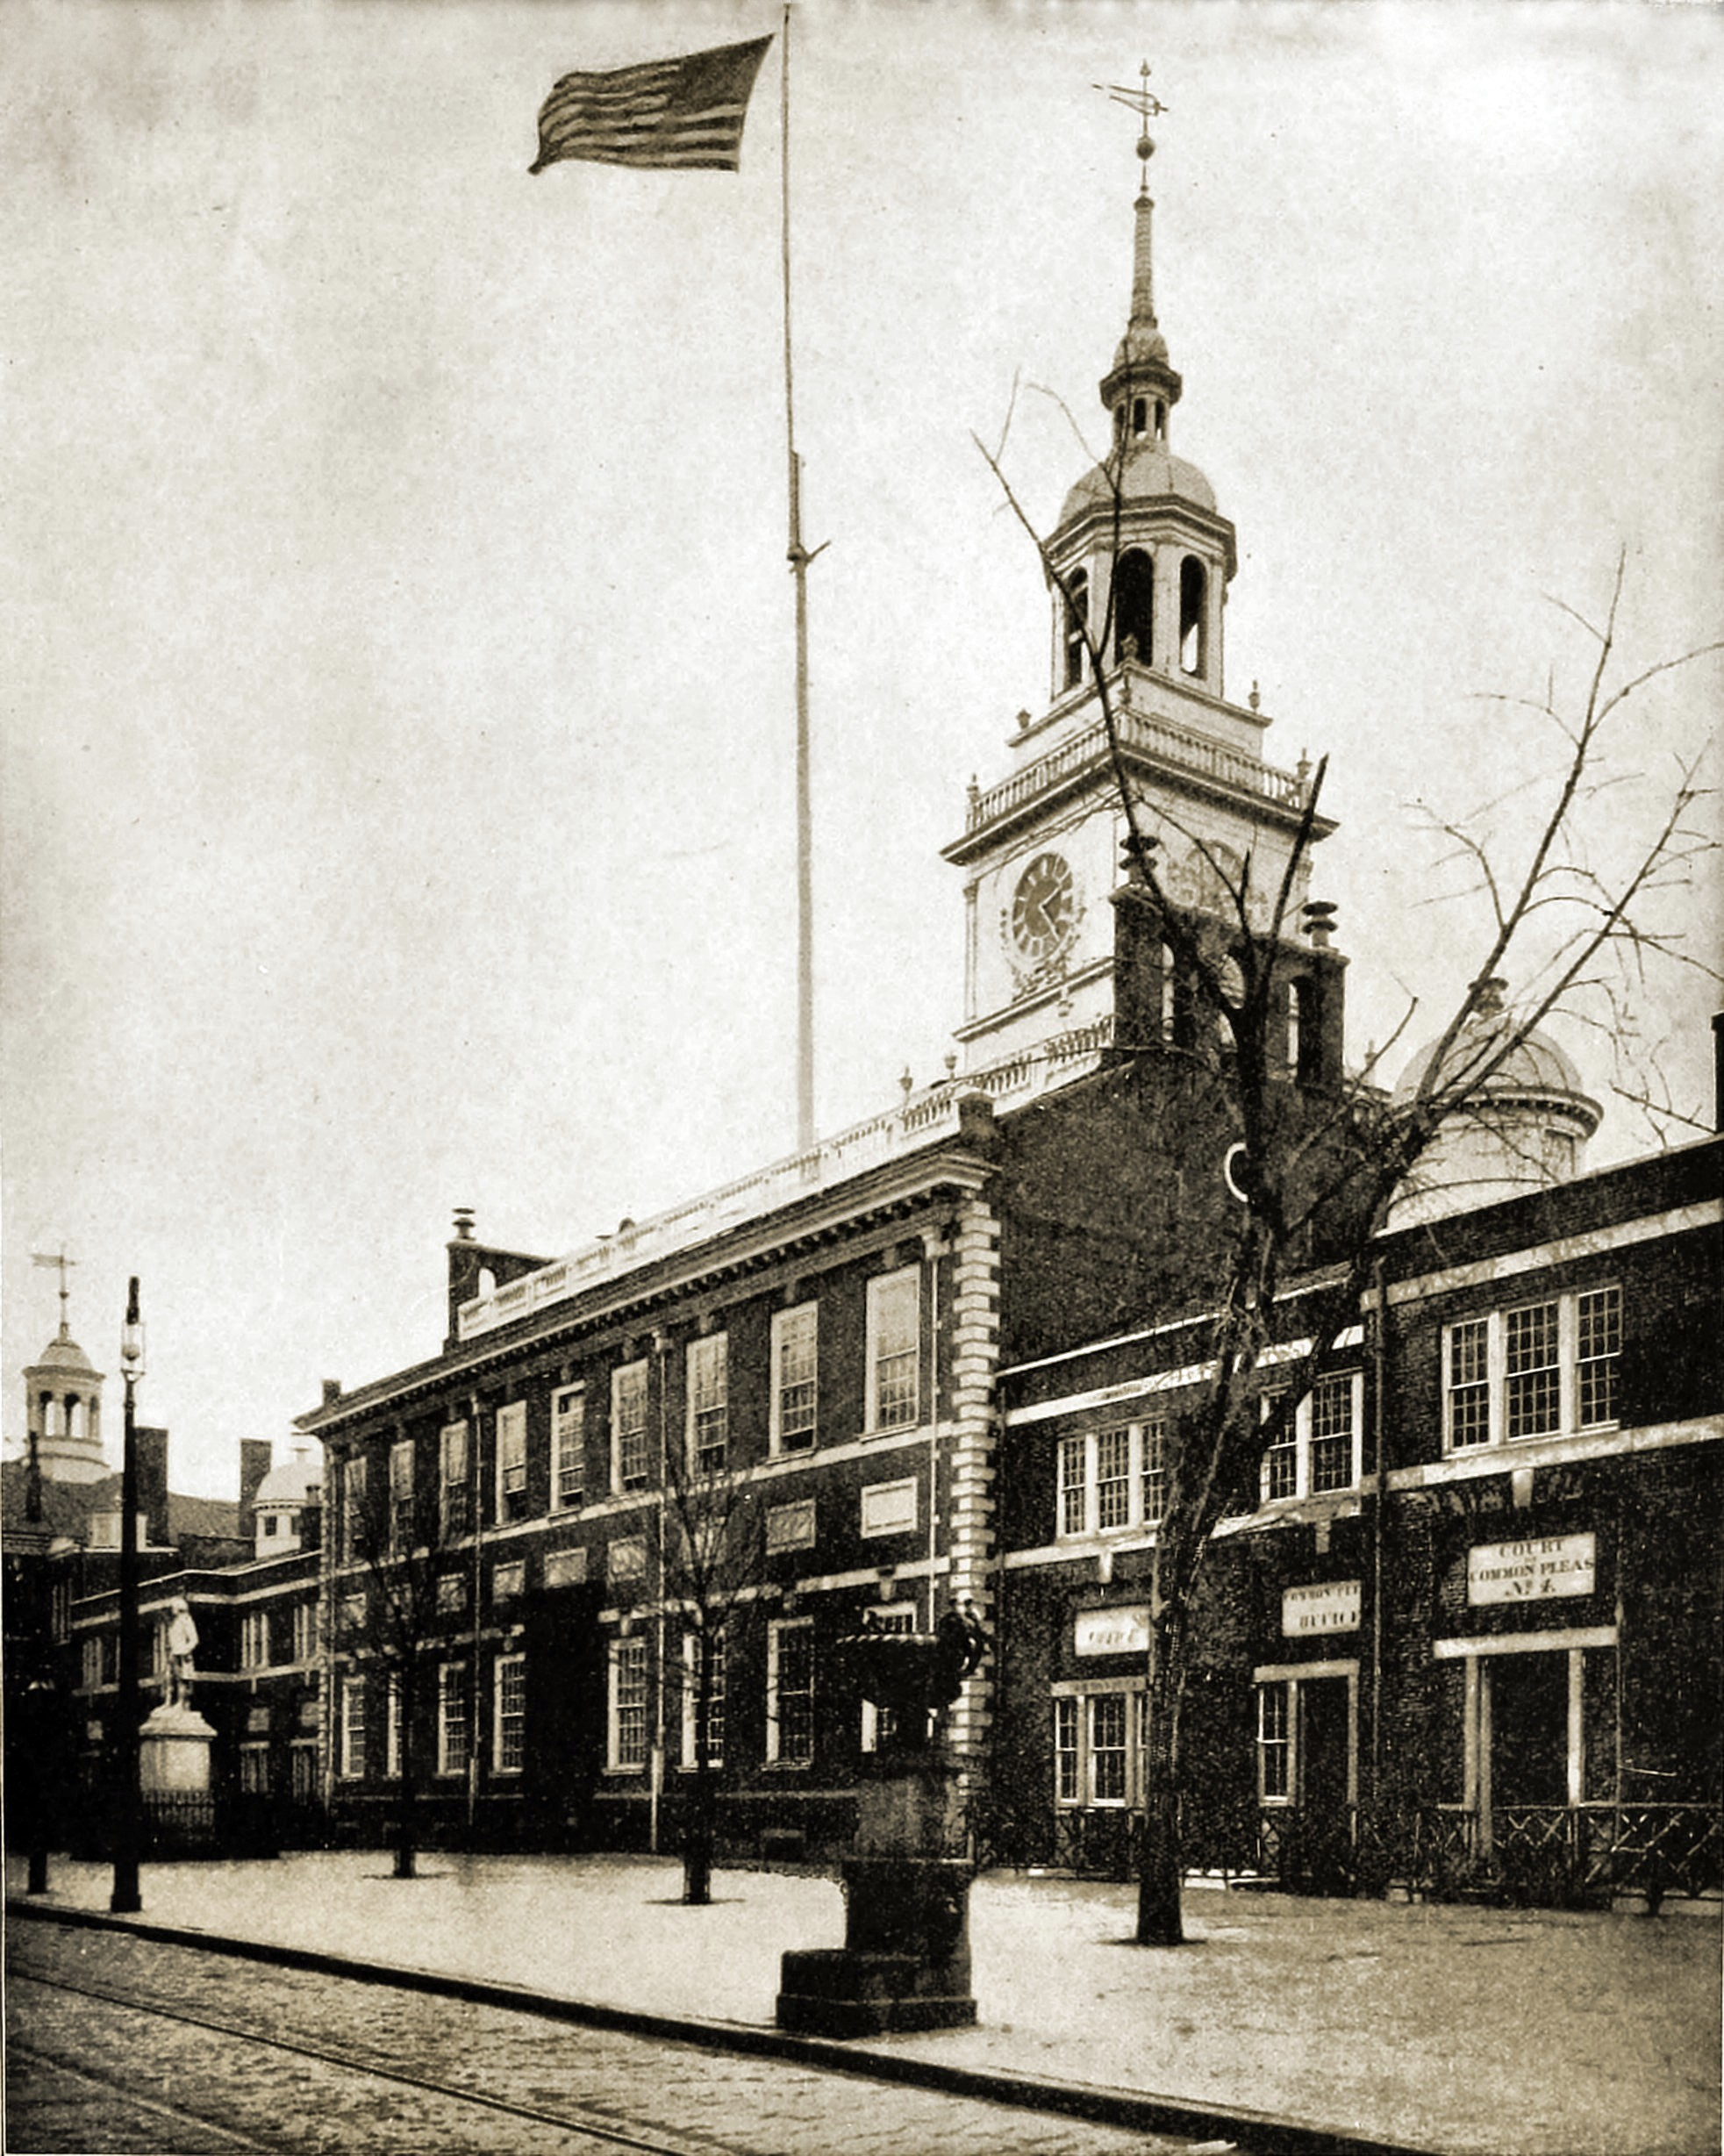 Independence Hall, Philadelphia, Pennsylvania, USA about 1892